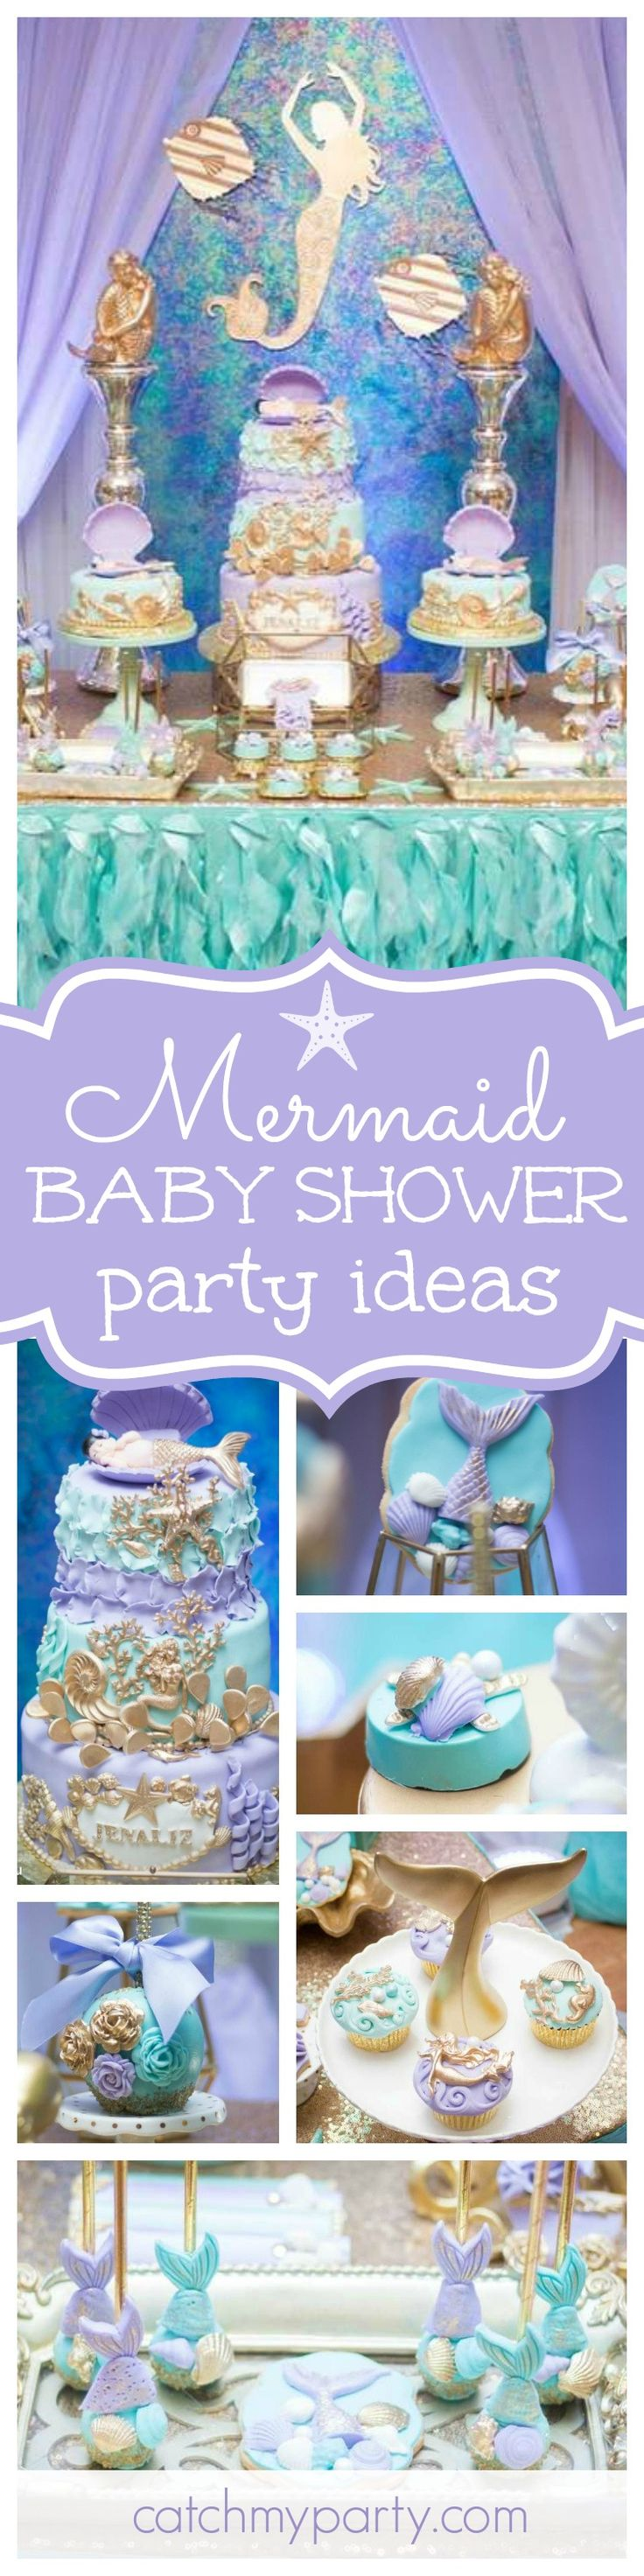 You don't want to miss this 'Awesome under the sea Mermaid Baby Shower'! The cake is amazing!! See more party ideas and share yours at CatchMyParty.com